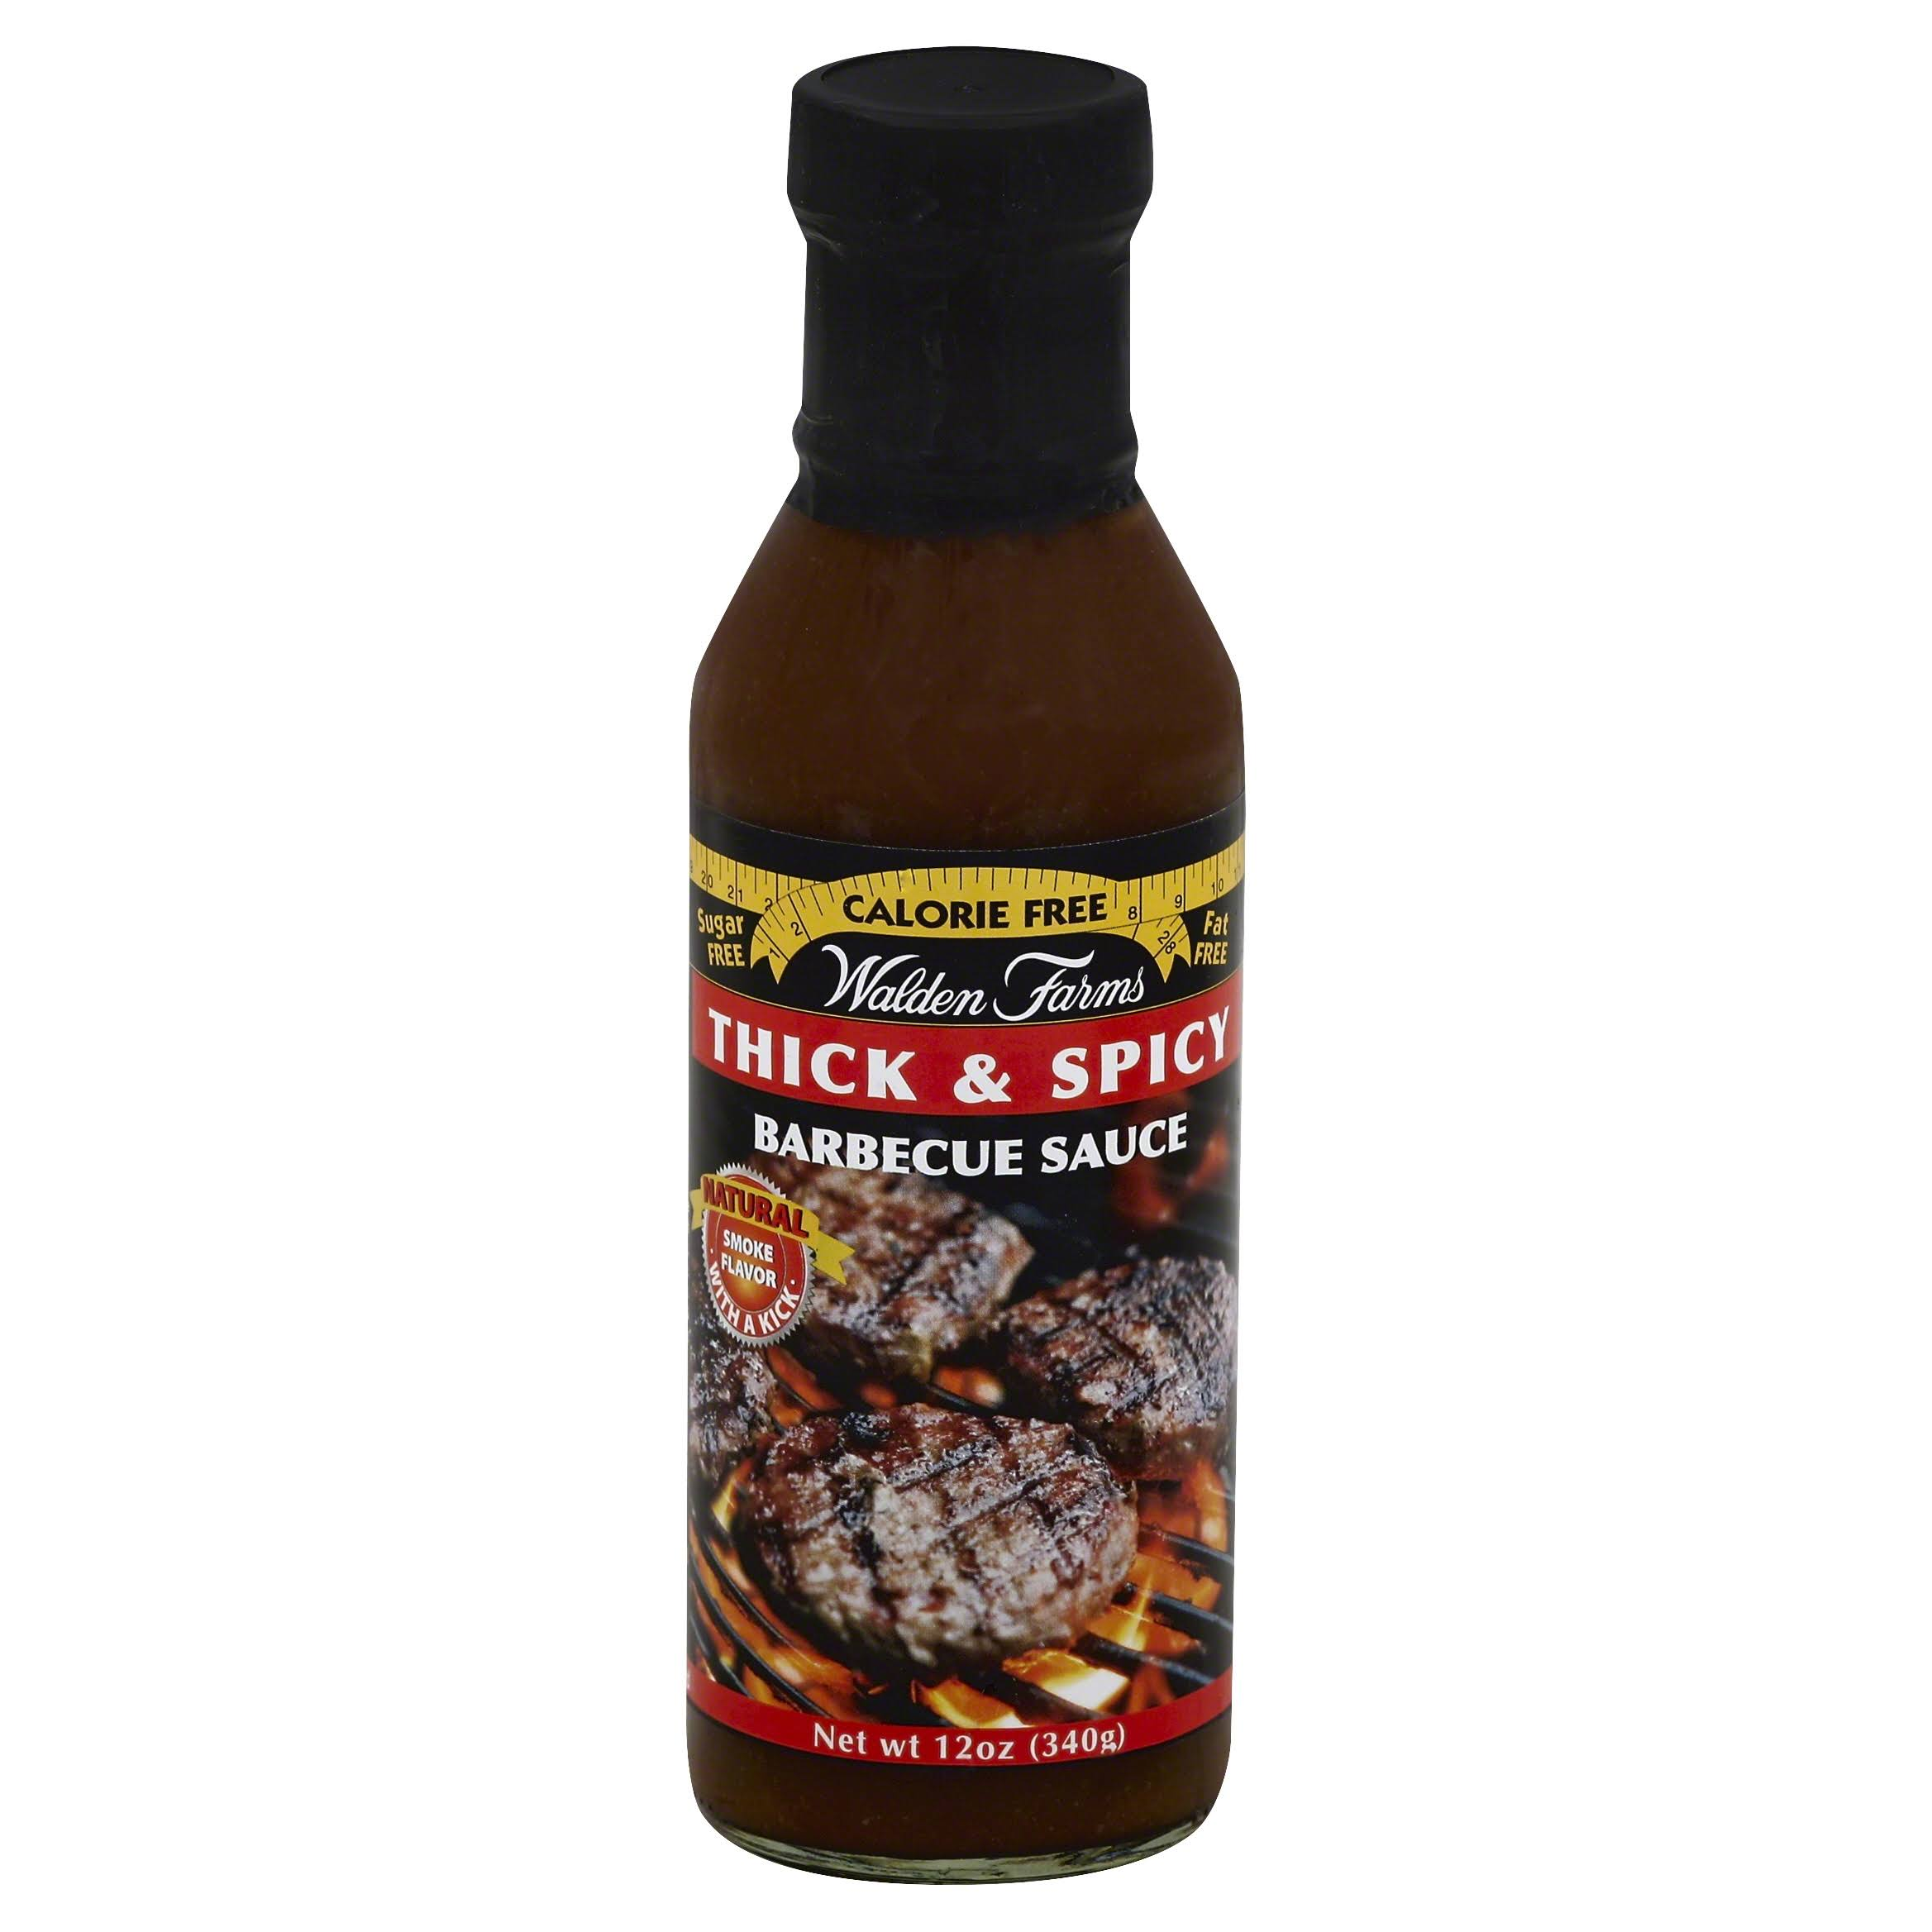 Walden Farms Barbecue Sauce, Thick & Spicy - 12 oz